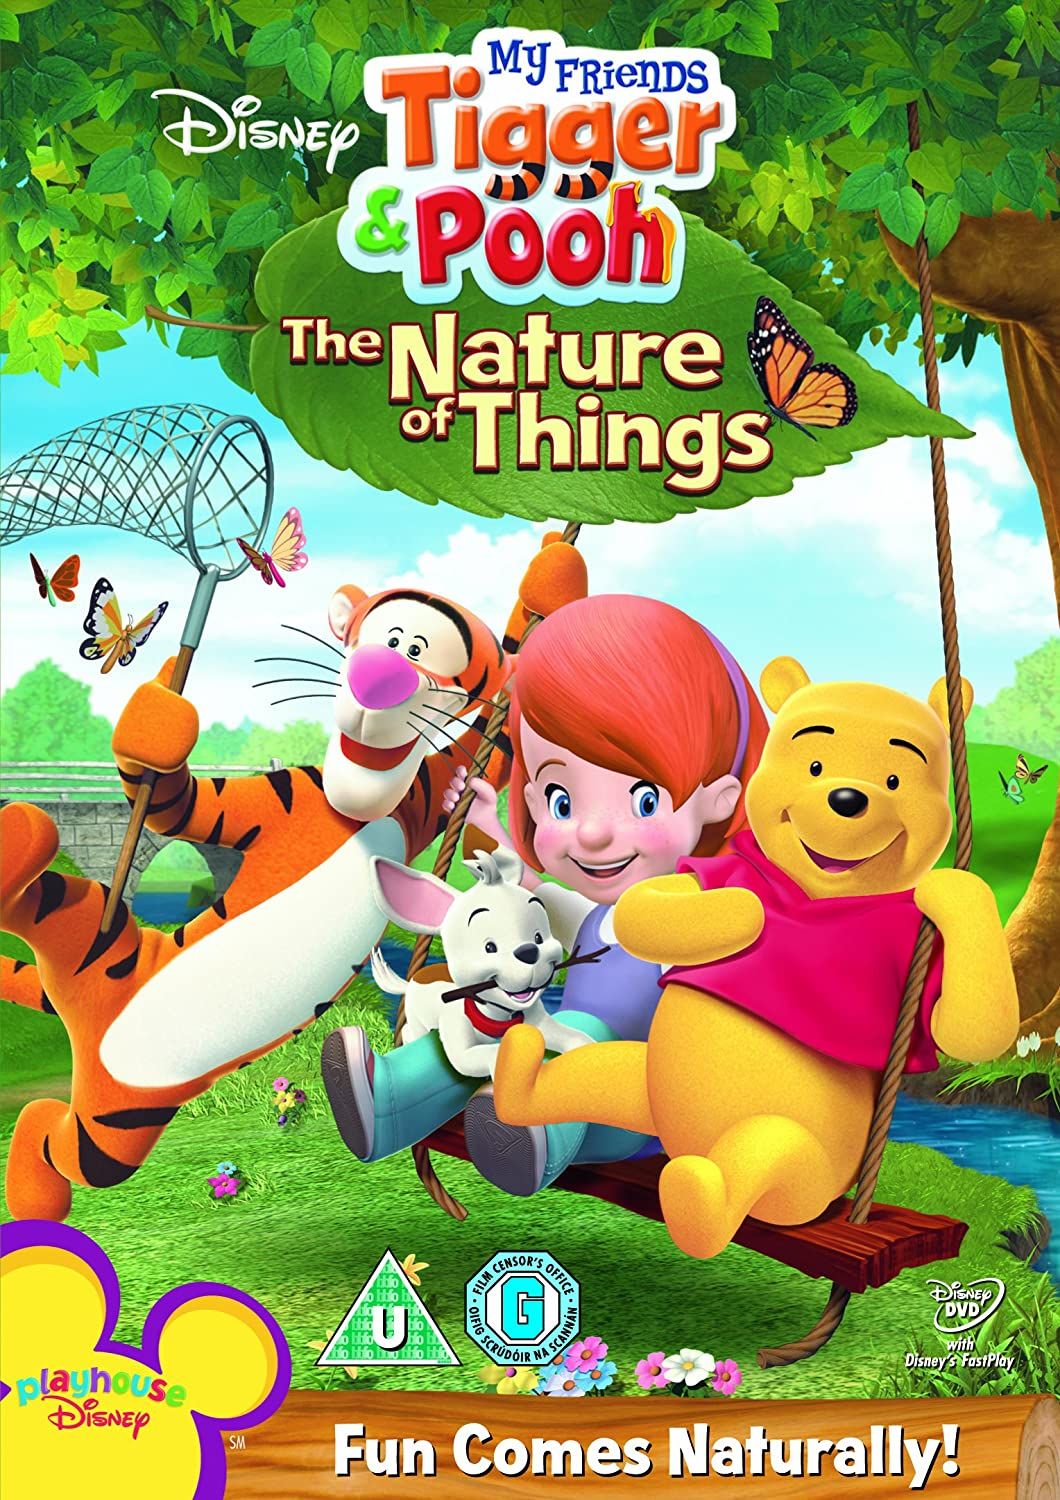 My friends tigger pooh the nature of things dvd amazon my friends tigger pooh the nature of things dvd amazon dvd blu ray altavistaventures Images